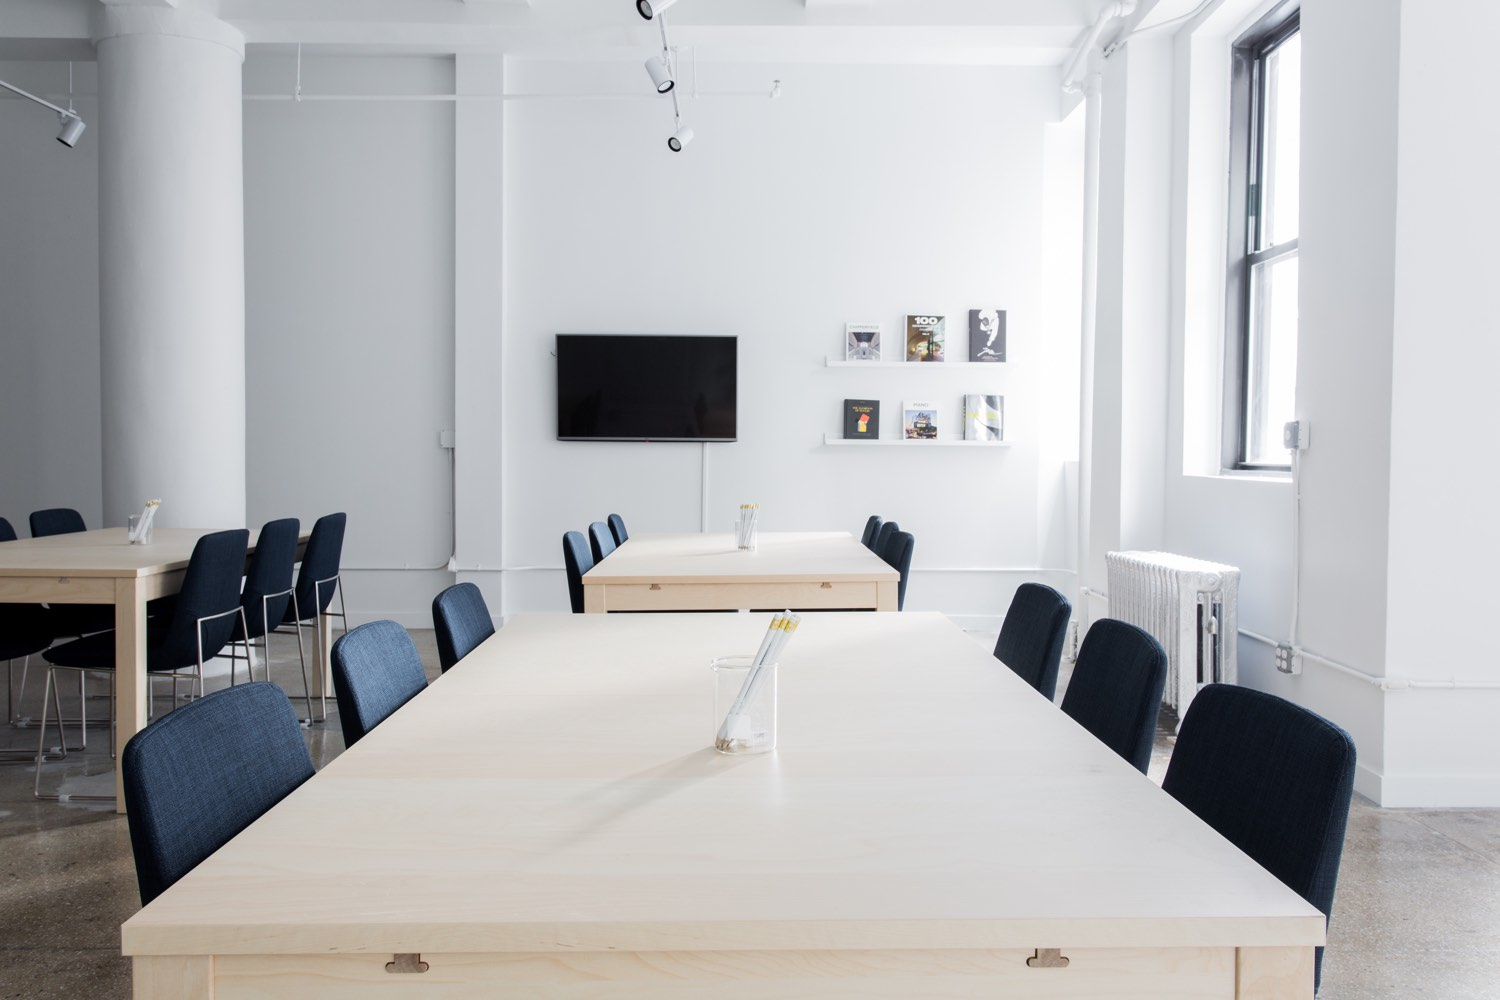 Video Conferencing: Best Practices for Meetings